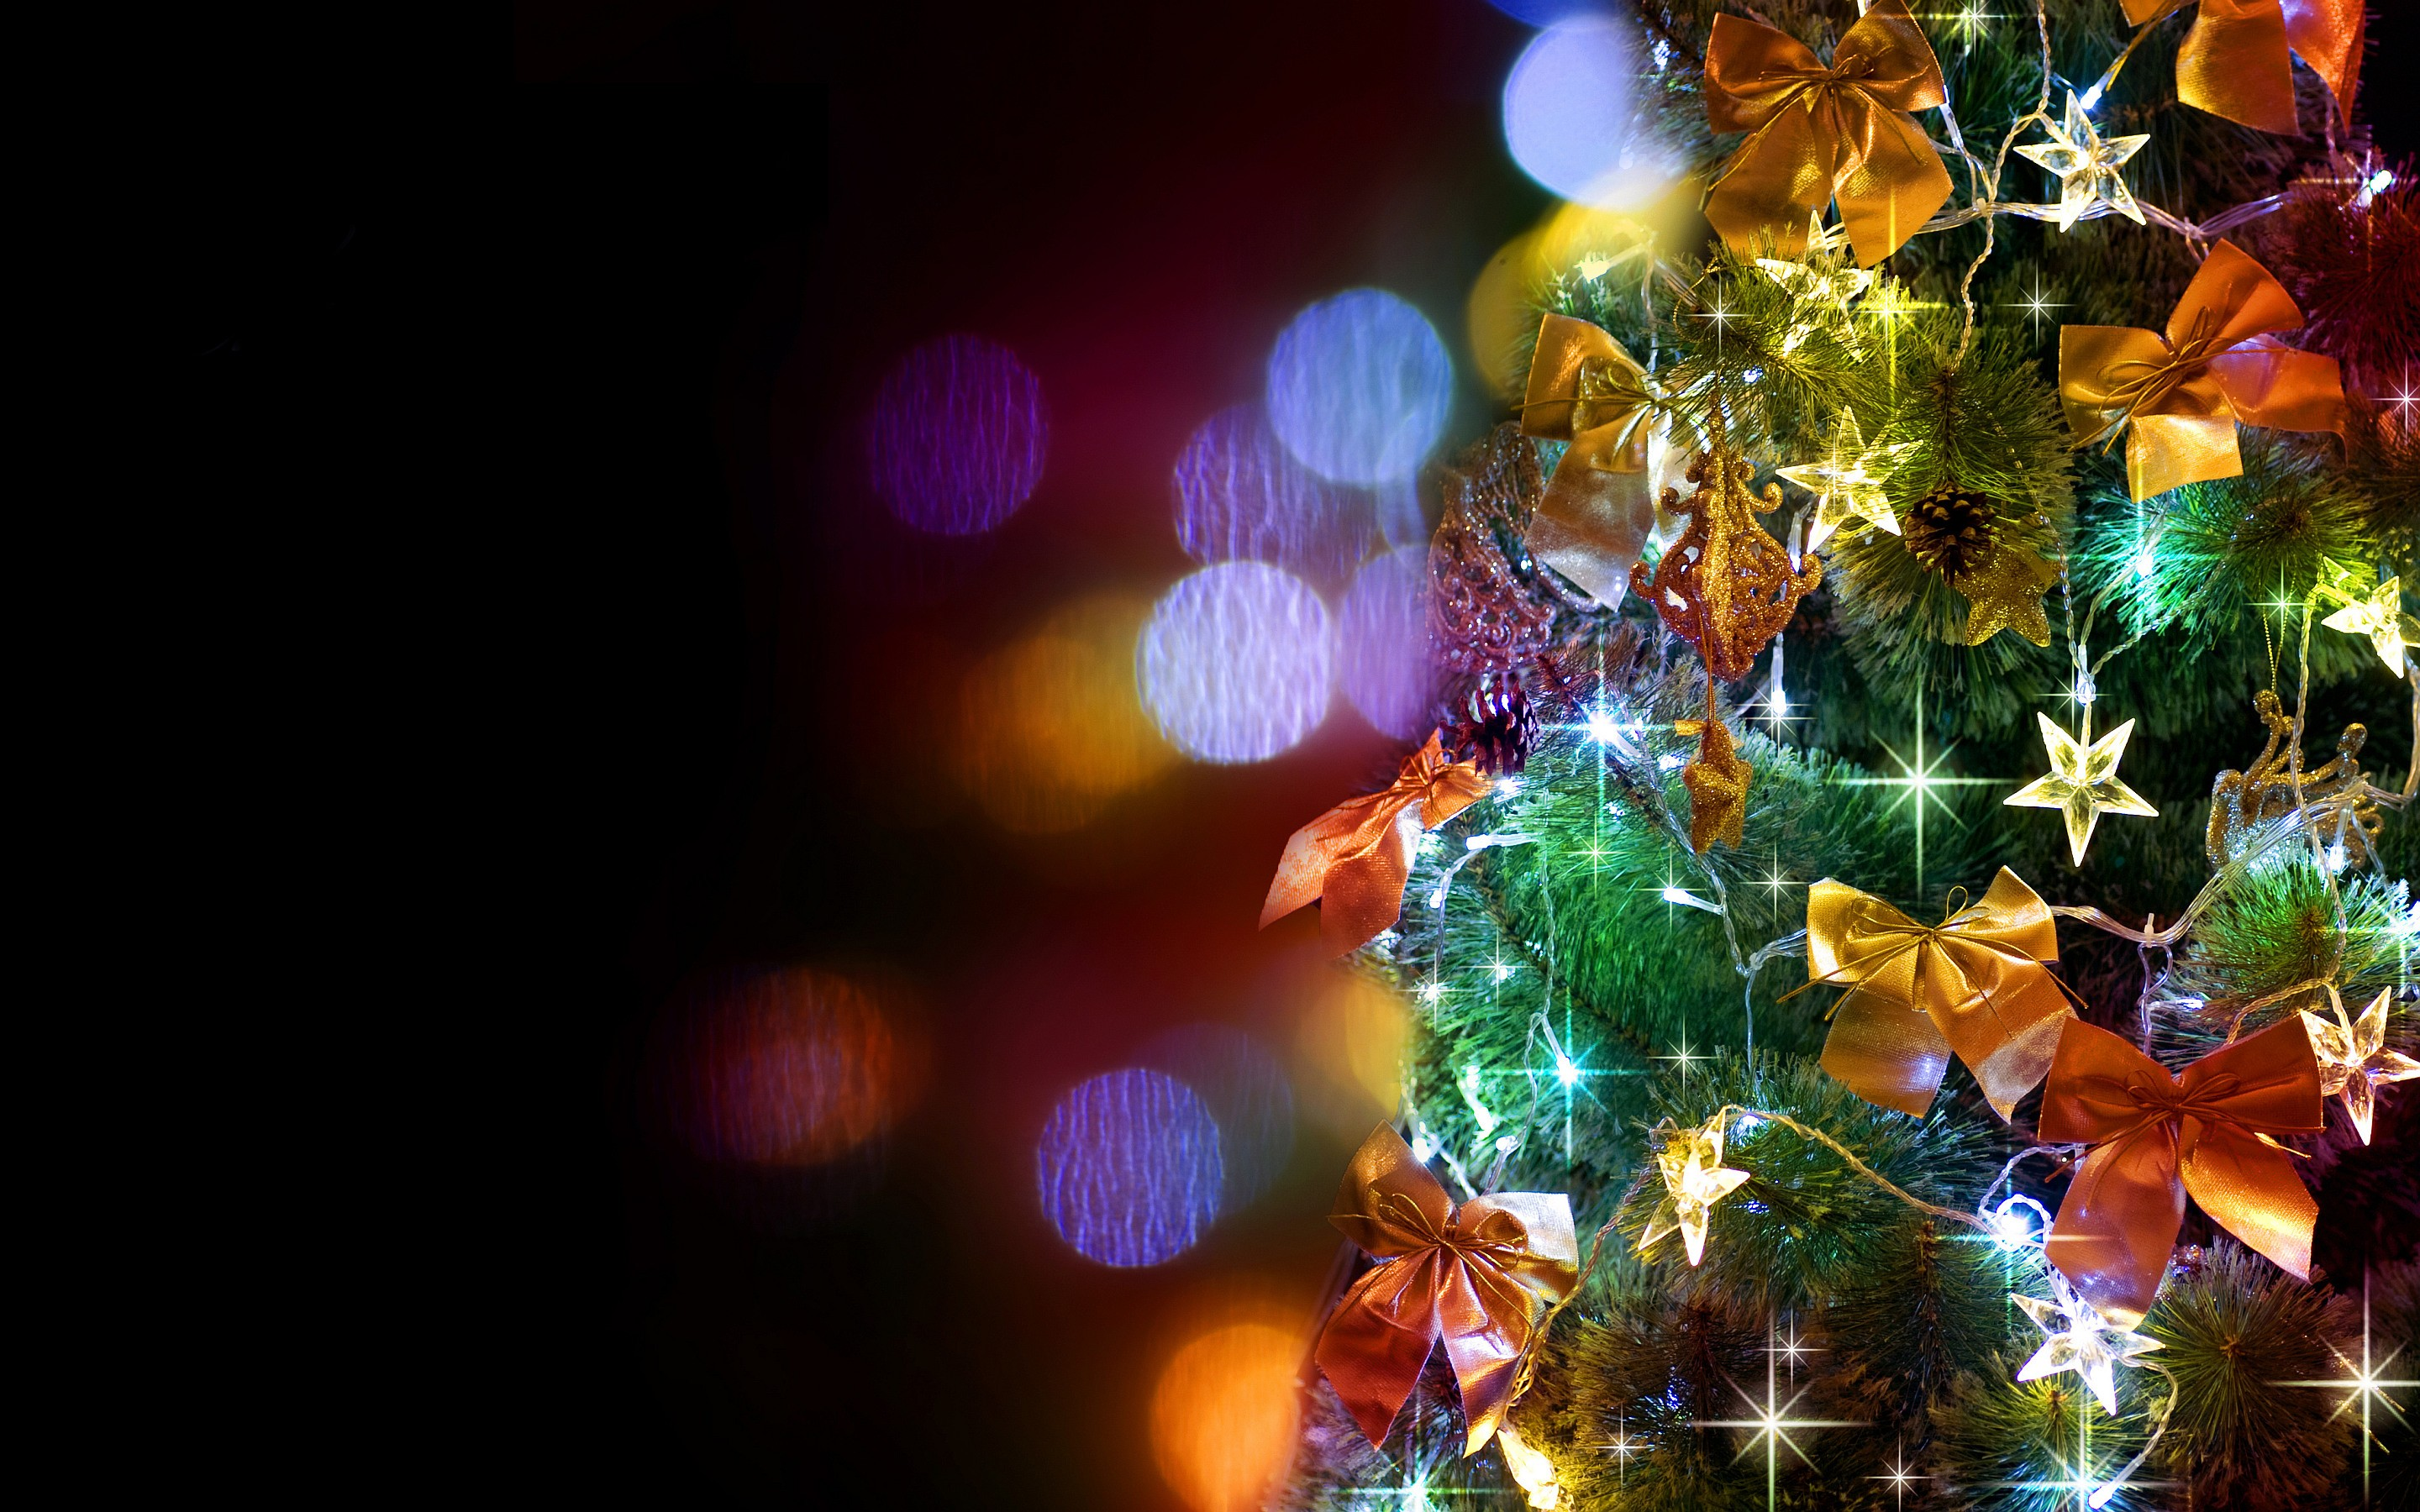 2880x1800 - Wallpaper for Christmas 24